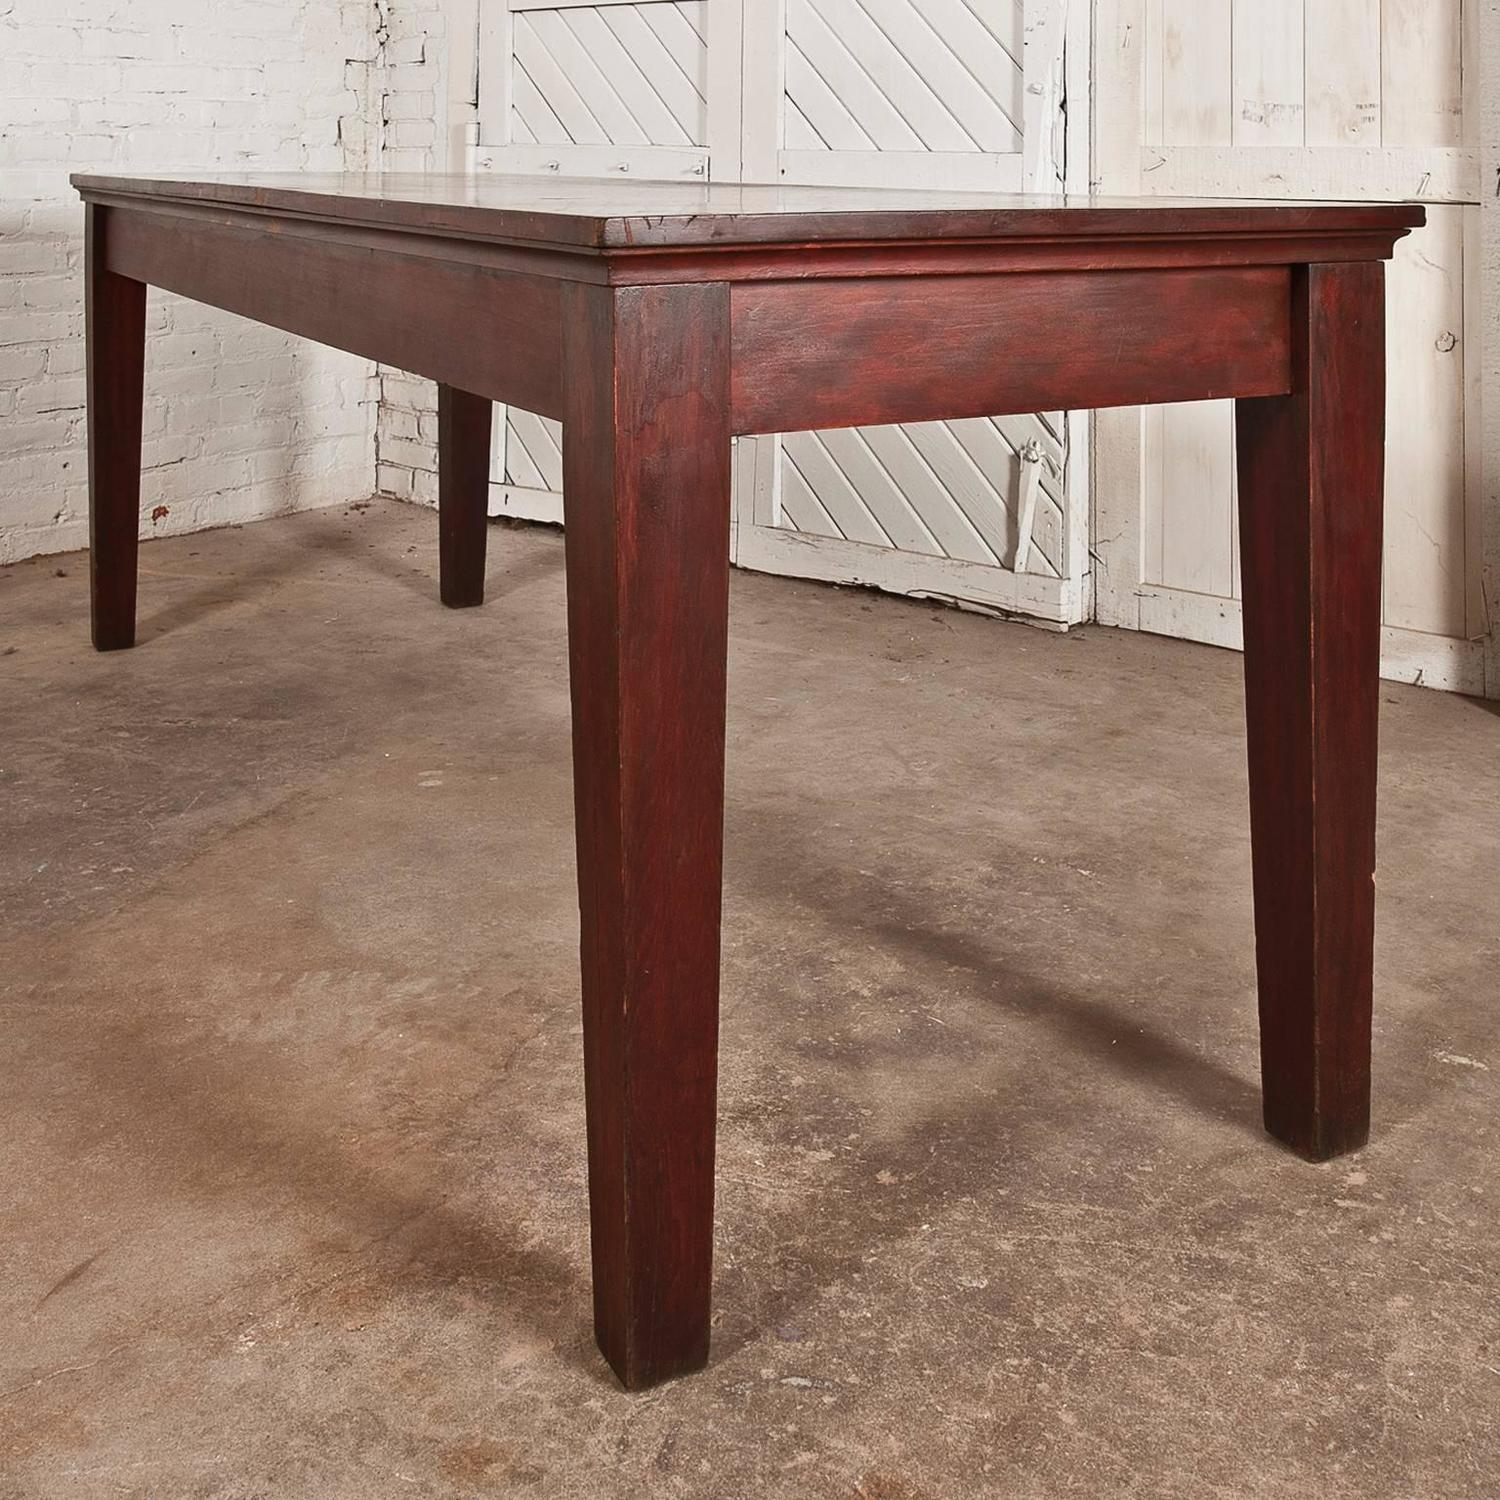 Antique Rustic Distressed Farmhouse Style Harvest Dining Or Console Table